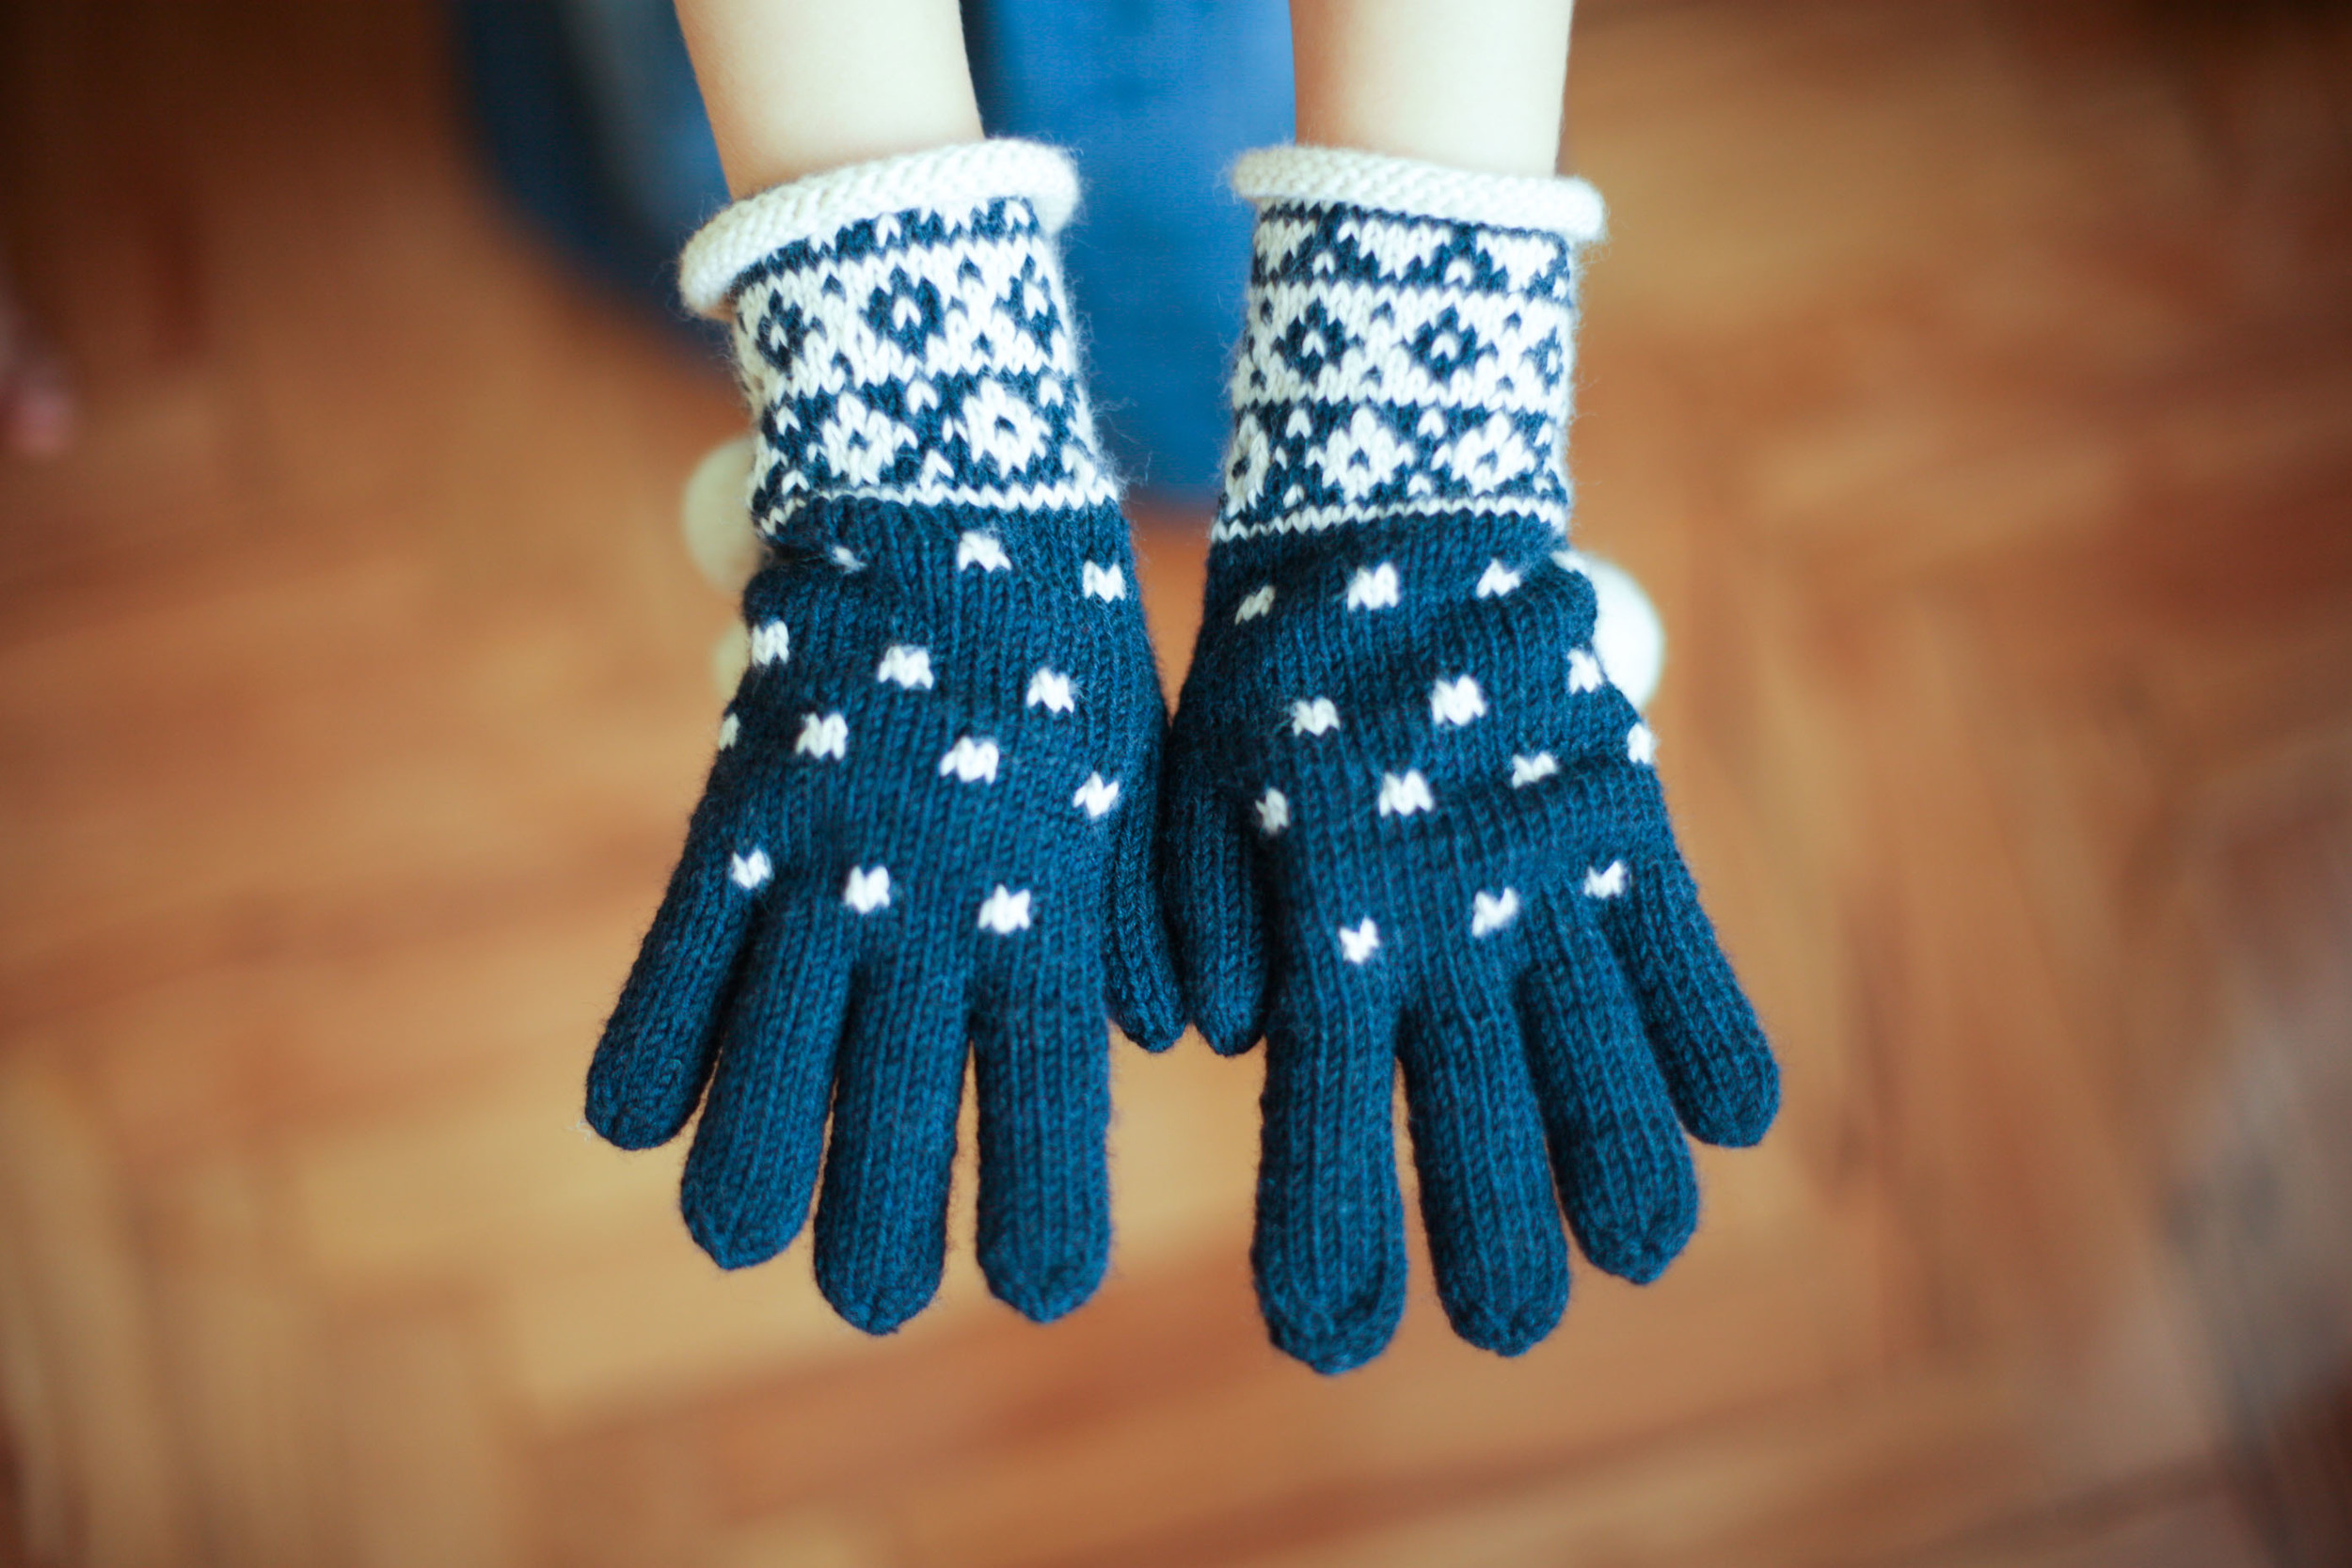 The beautiful gloves I purchased for the middle kid. I was told it was wool but they feel to me like they have some alpaca. They are slightly silky in their softness but the yarn isn't over processed.